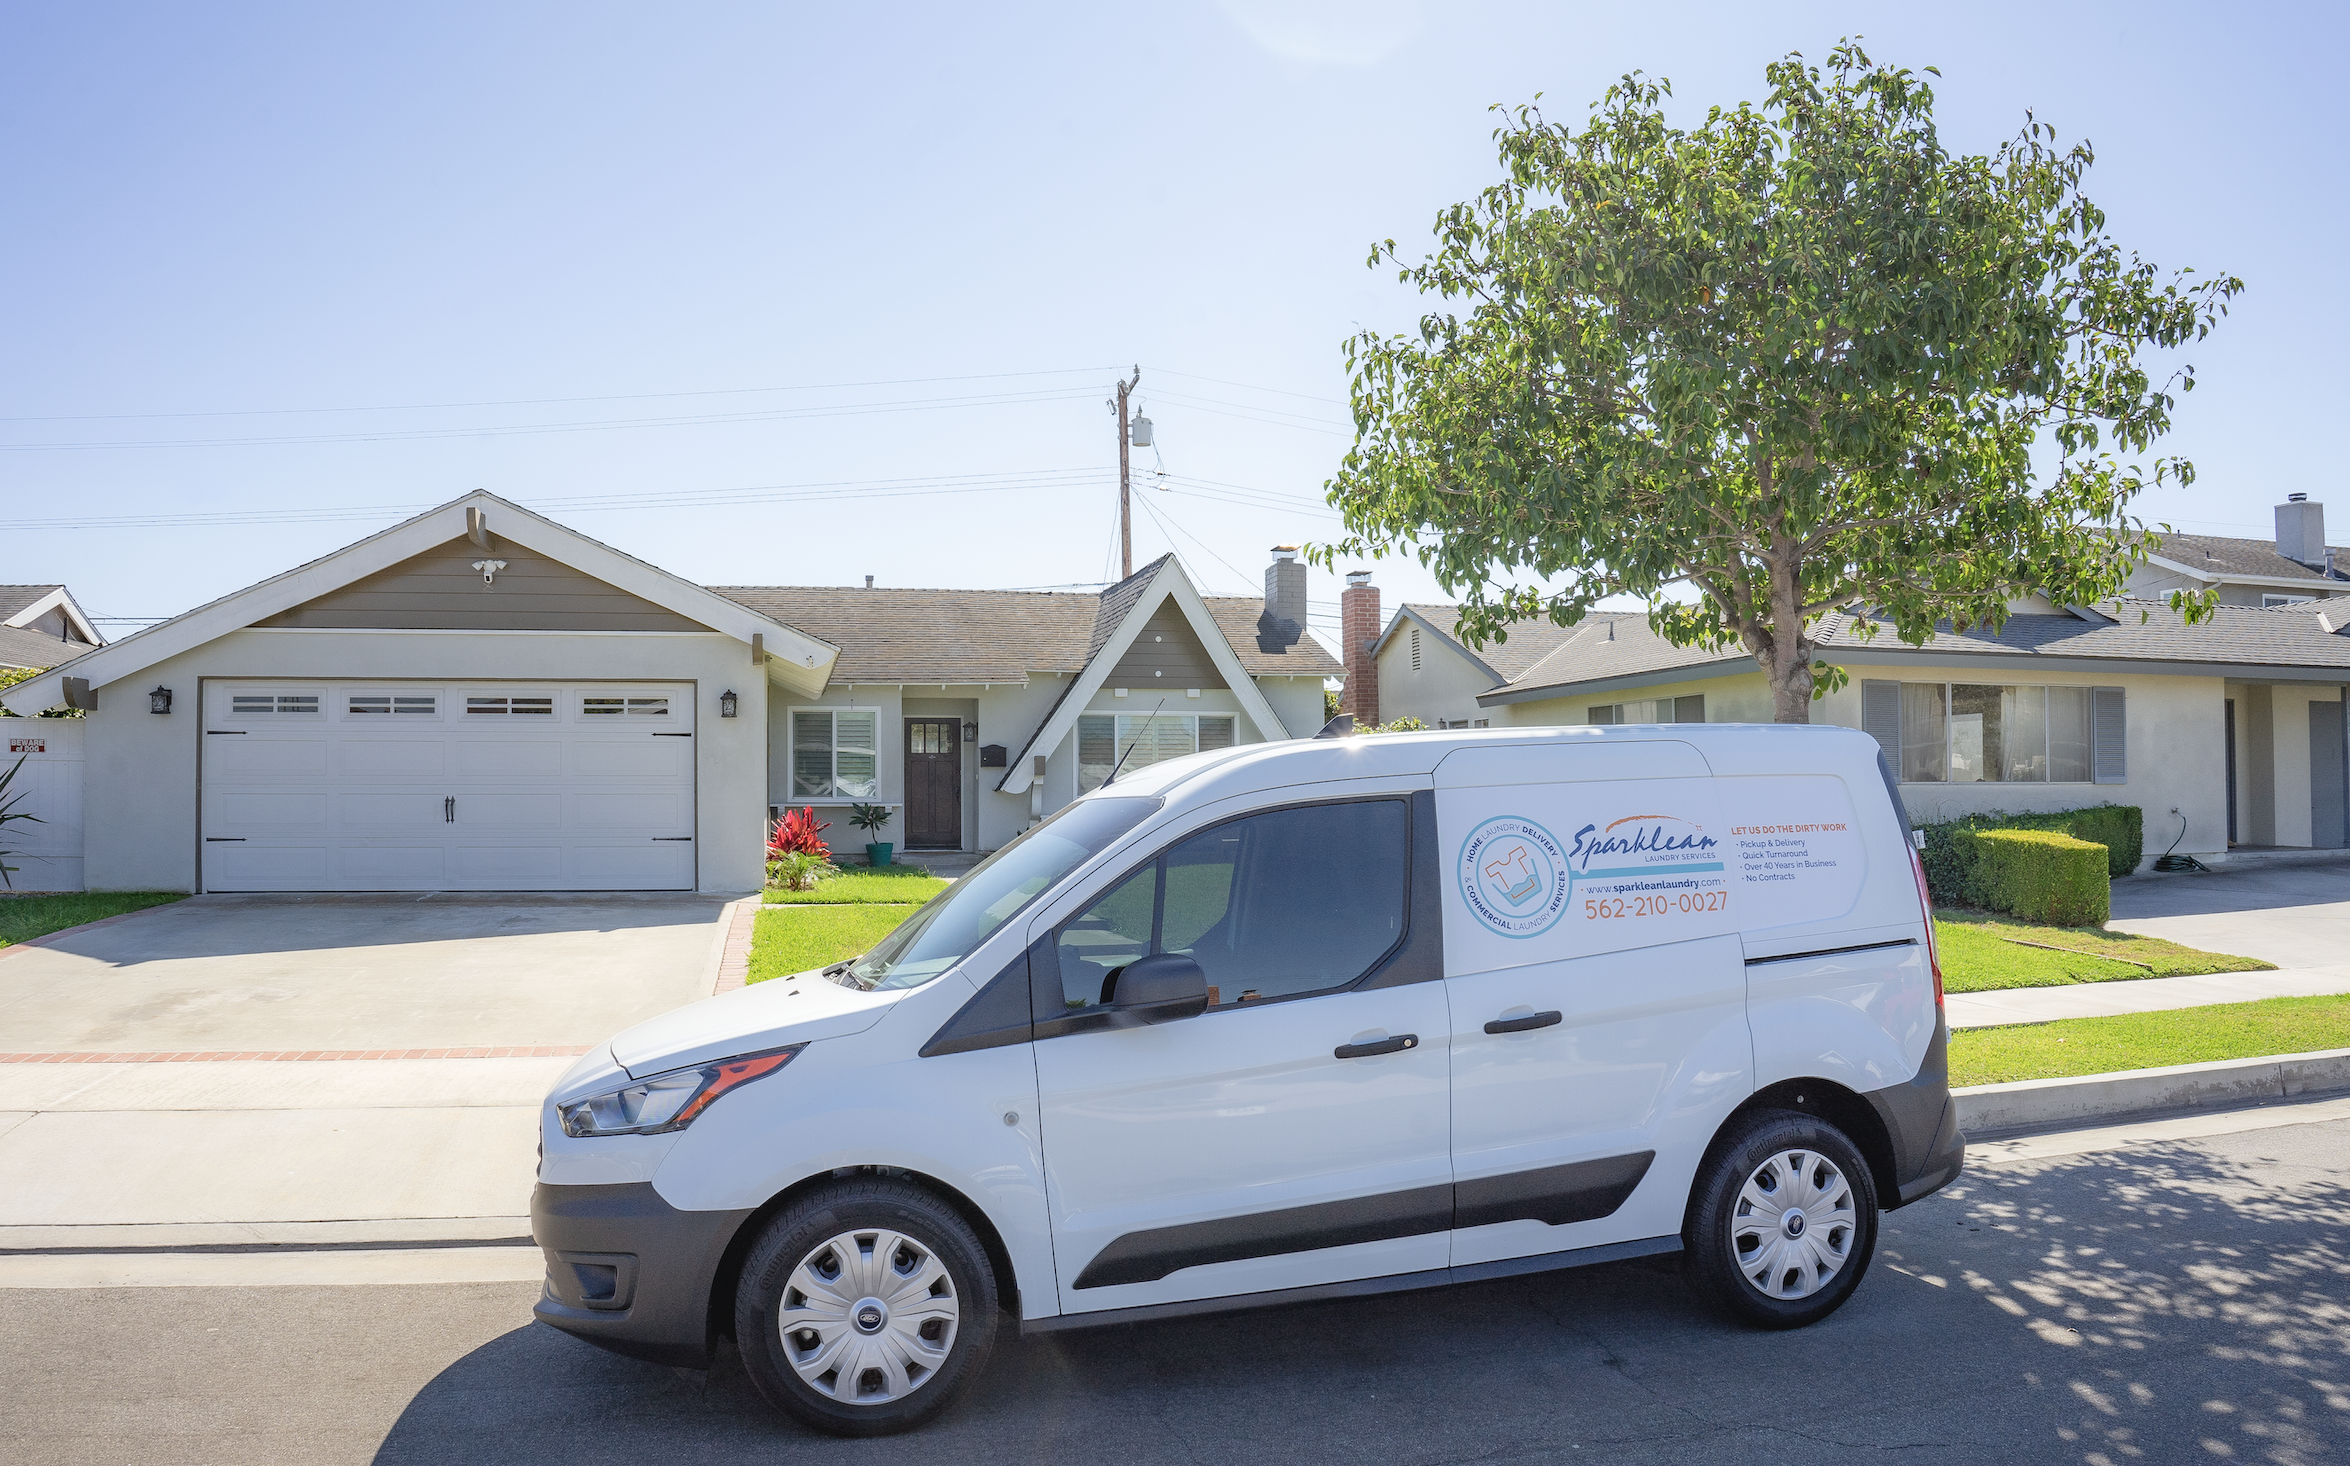 Laundry Delivery Service in Orange County